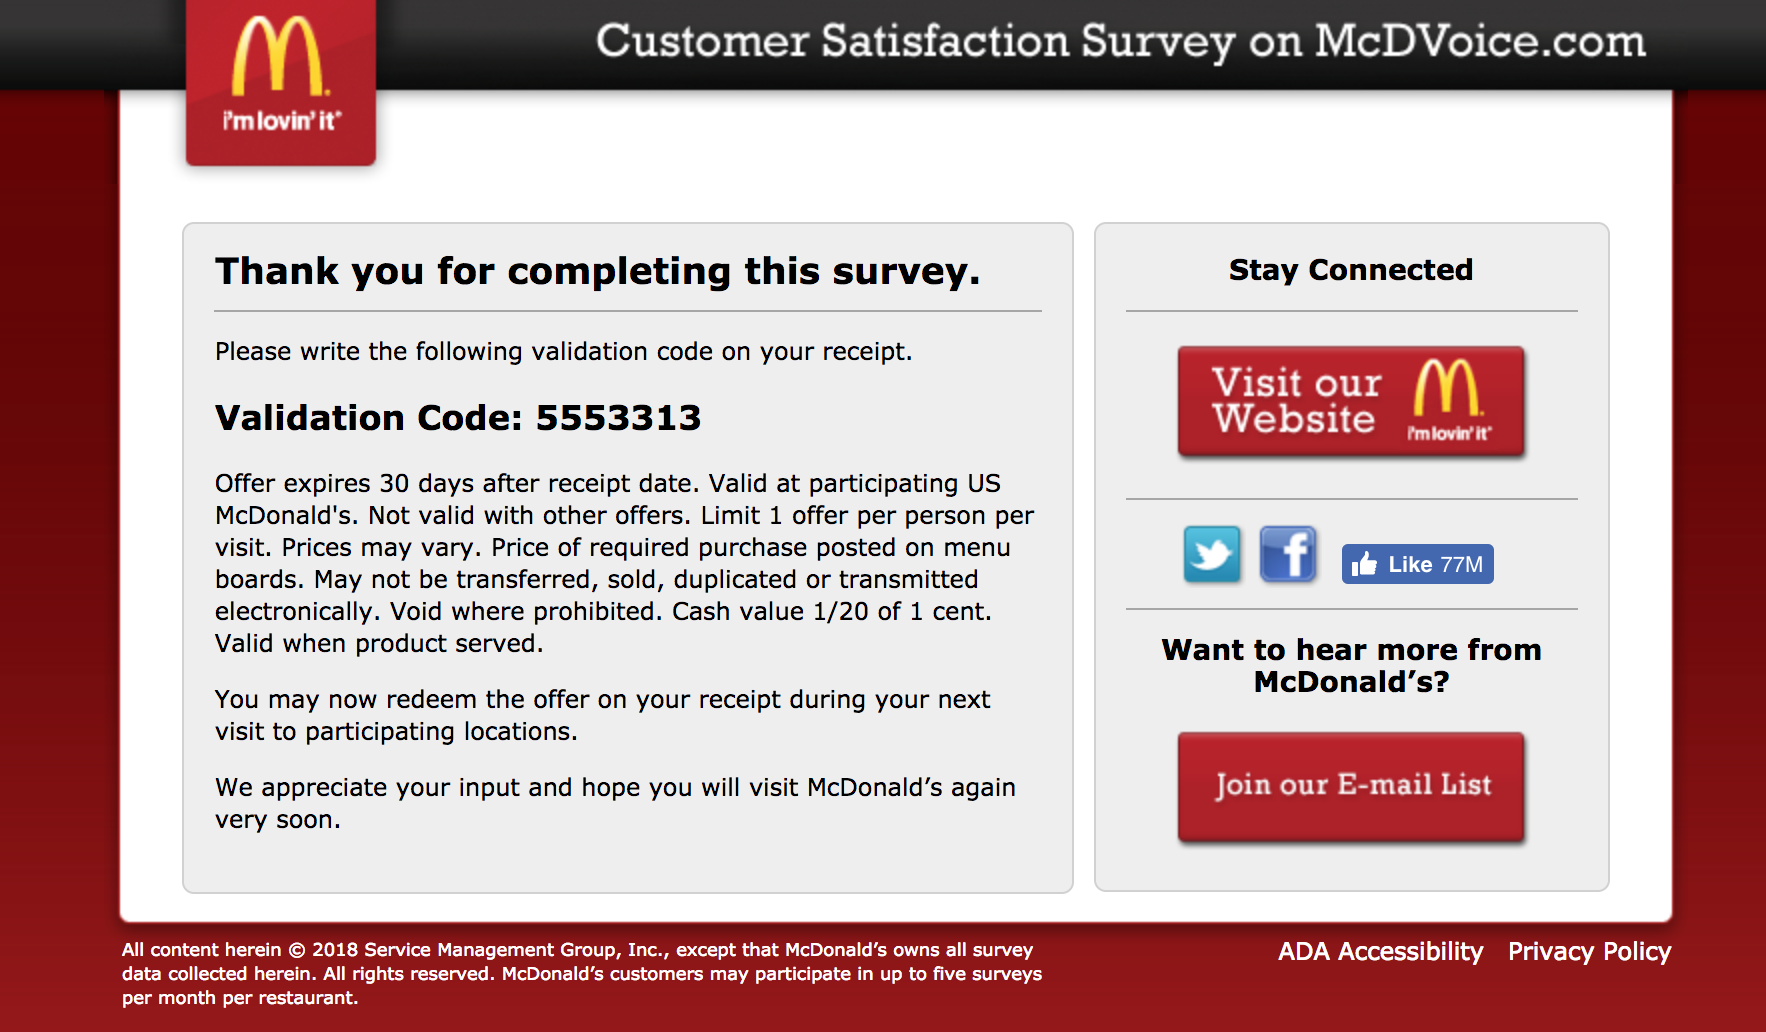 mcdvoice completed survey validation code